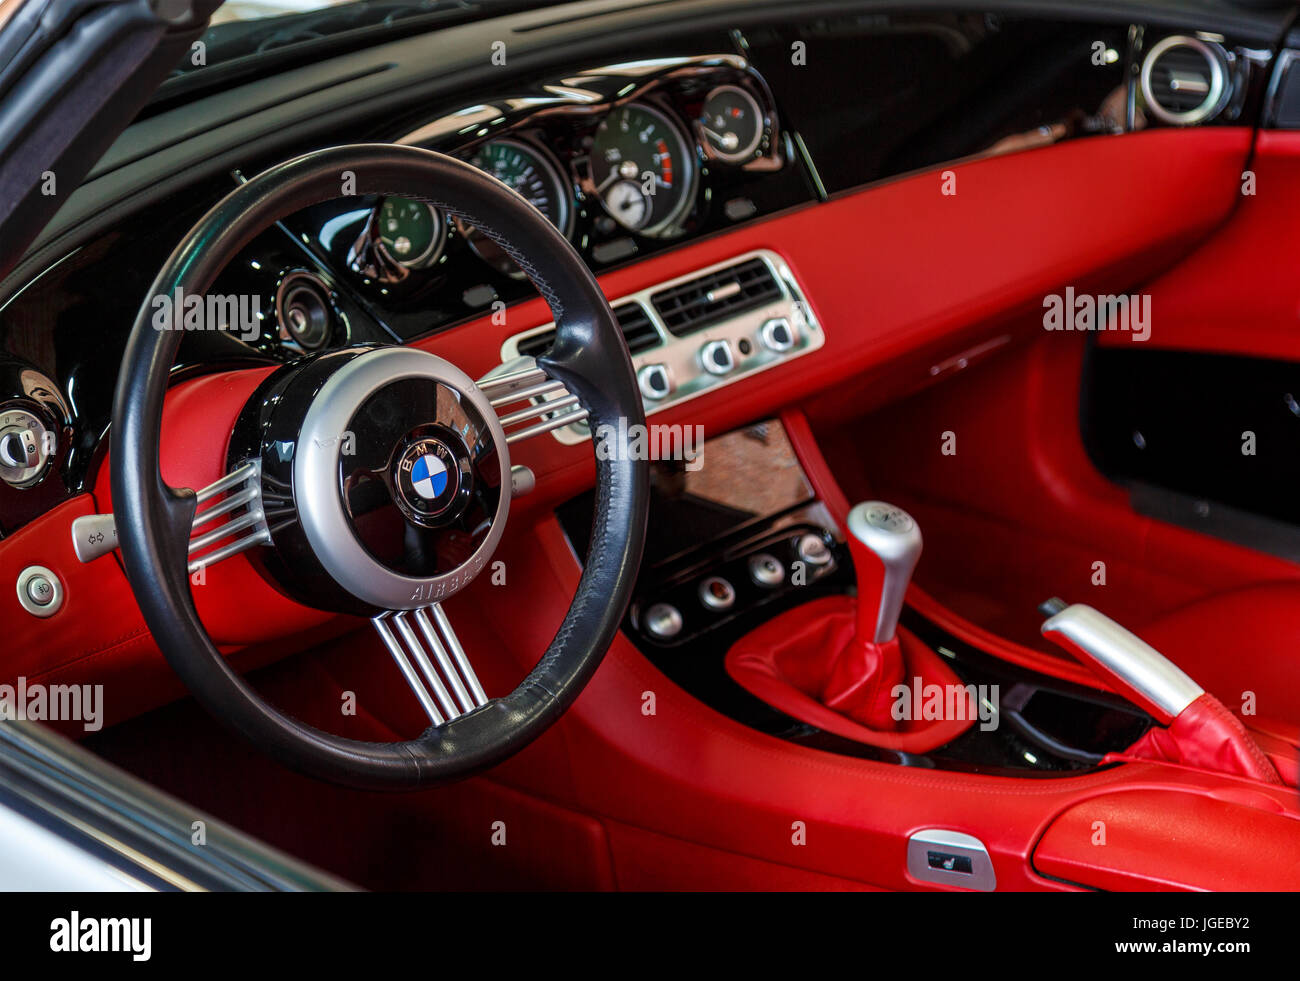 Bmw Z8 Retro Roadster Styling Black And Red Interior At